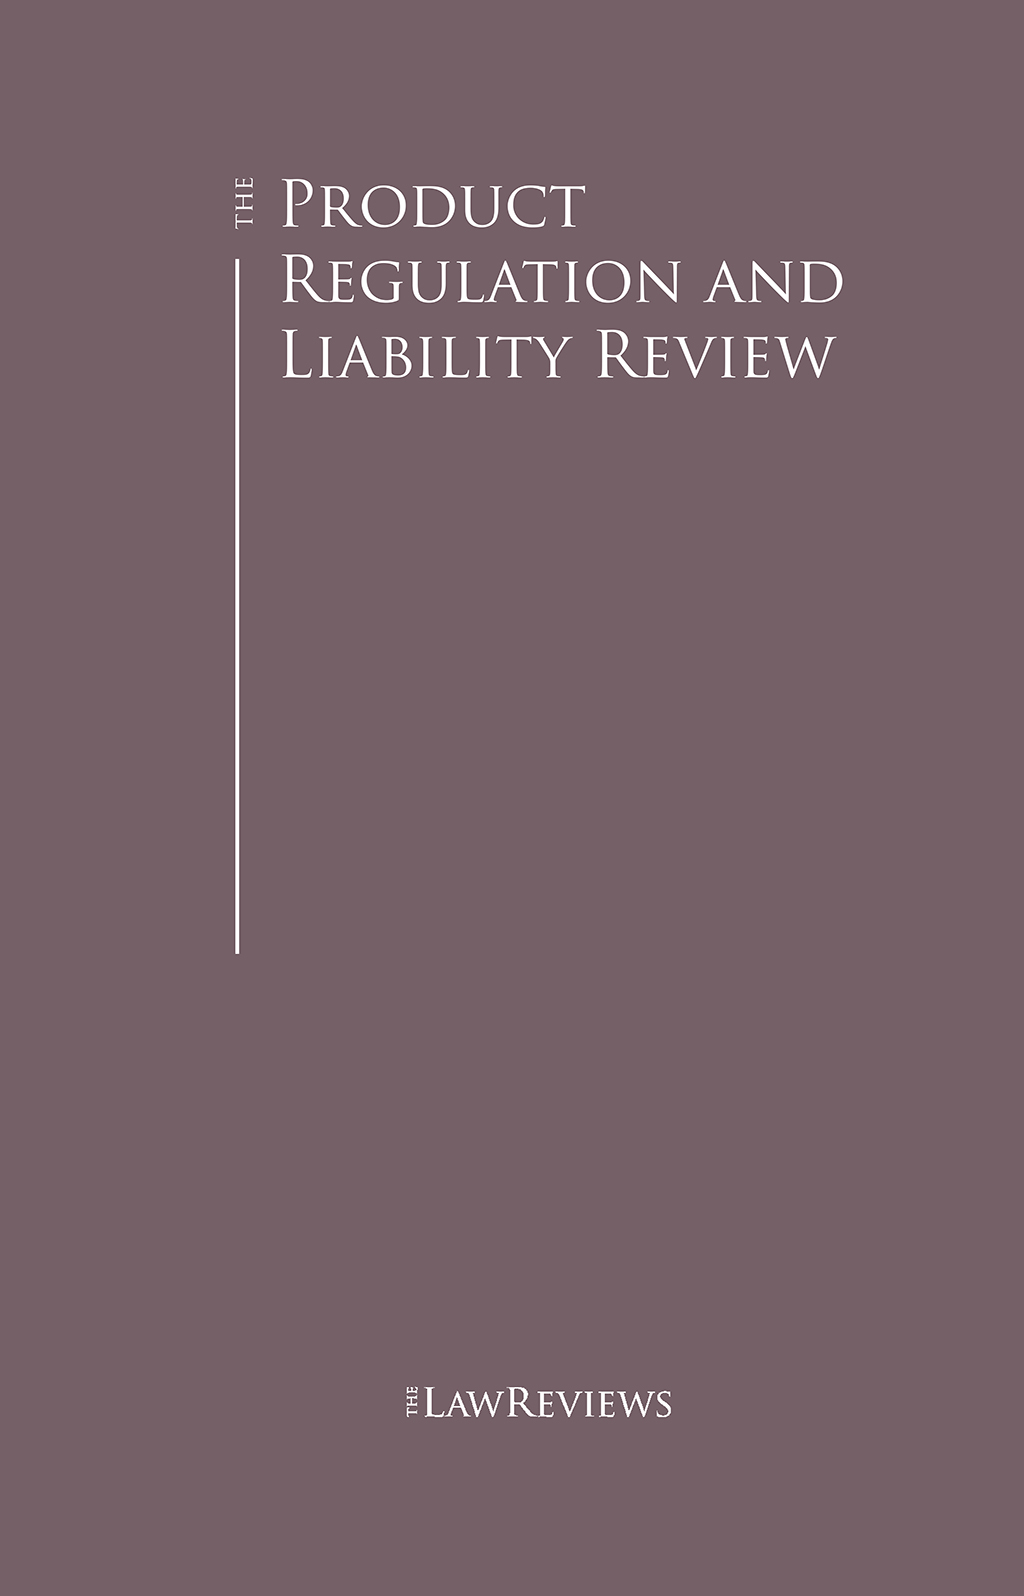 The Product Regulation and Liability Review